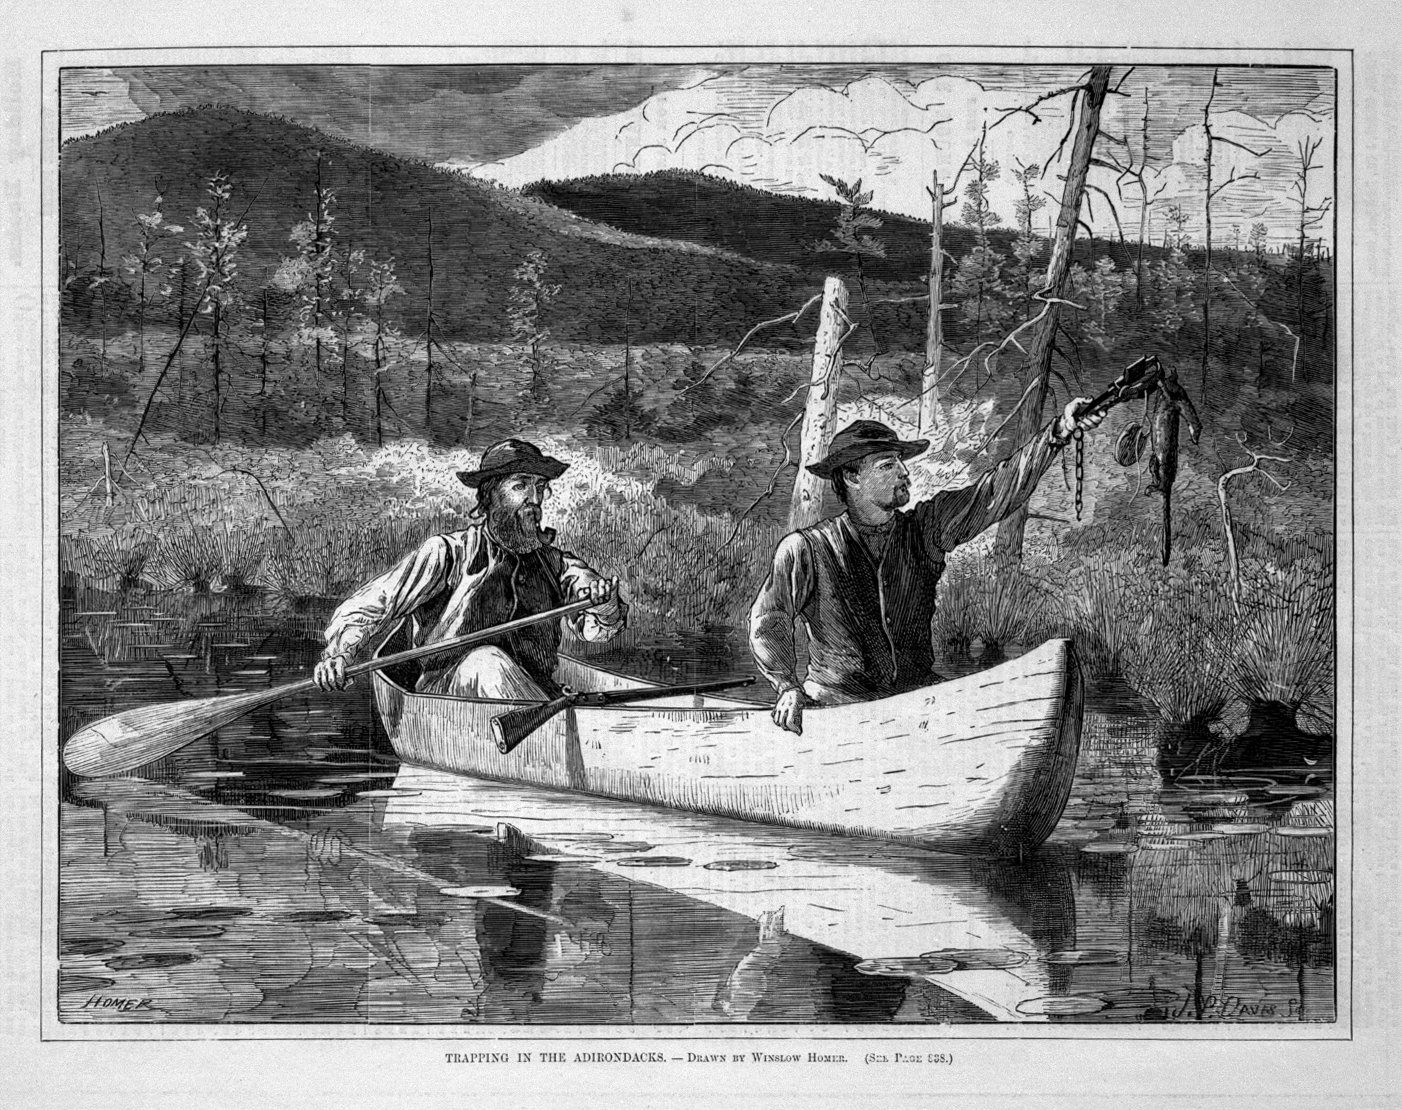 Brooklyn Museum: Trapping in the Adirondacks